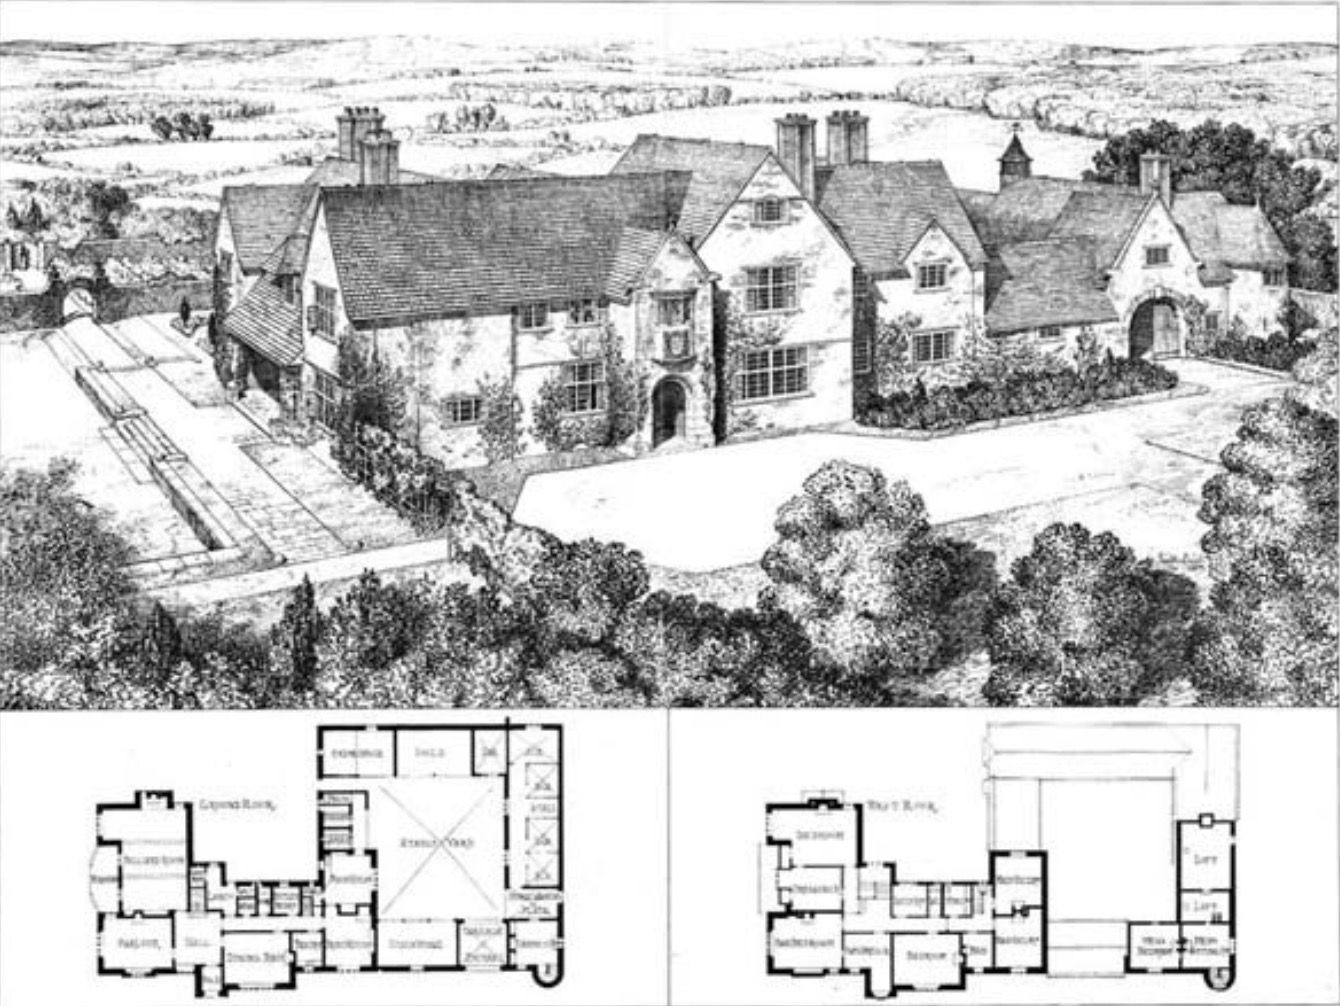 English Country Estate Vintage House Plans Courtyard House Plans Mansion Plans